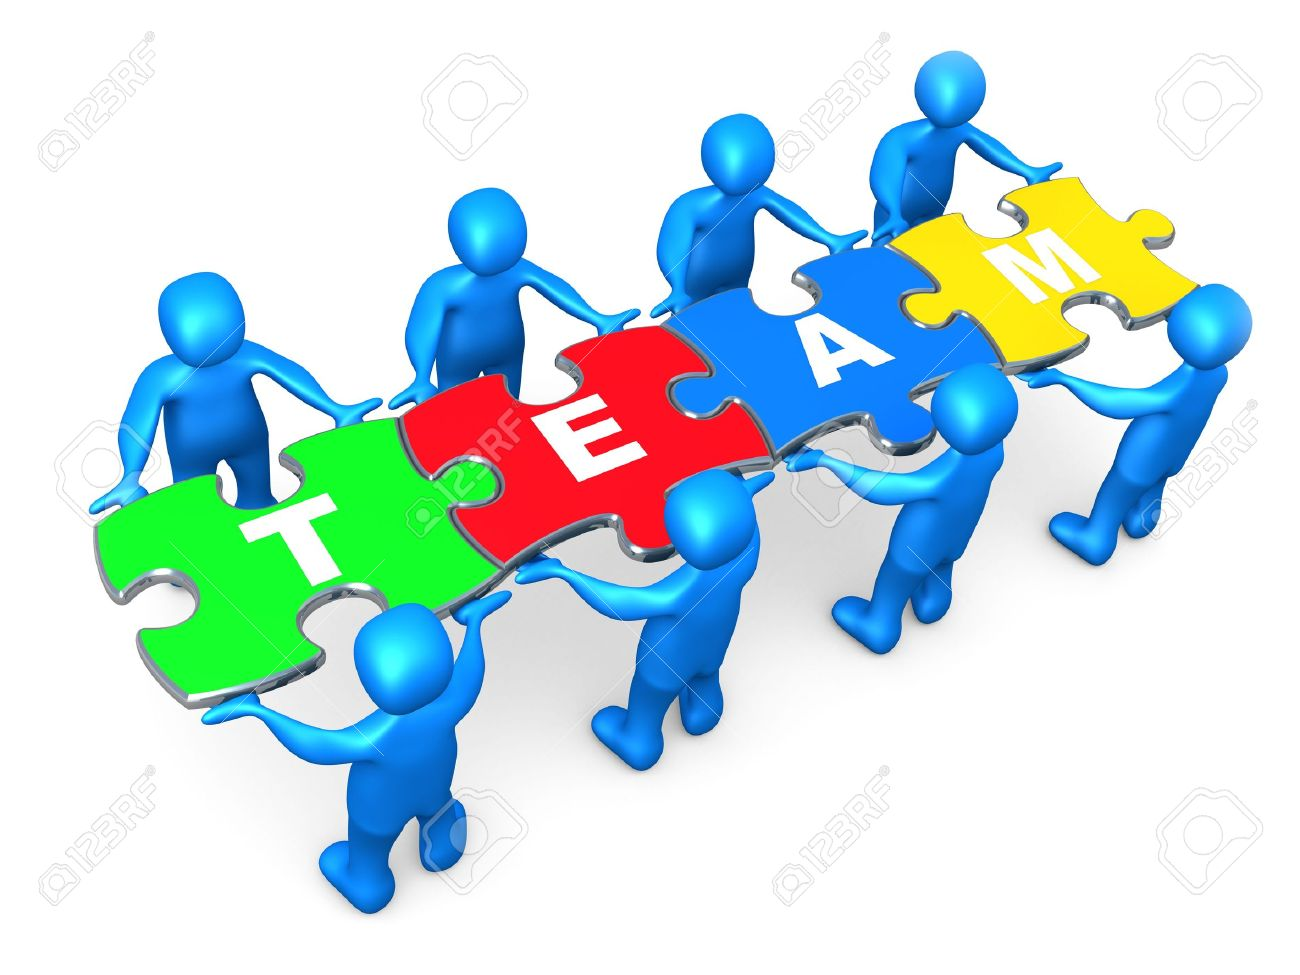 3d People Holding Pieces Of A Jigsaw Puzzle With The Word Team Stock Photo